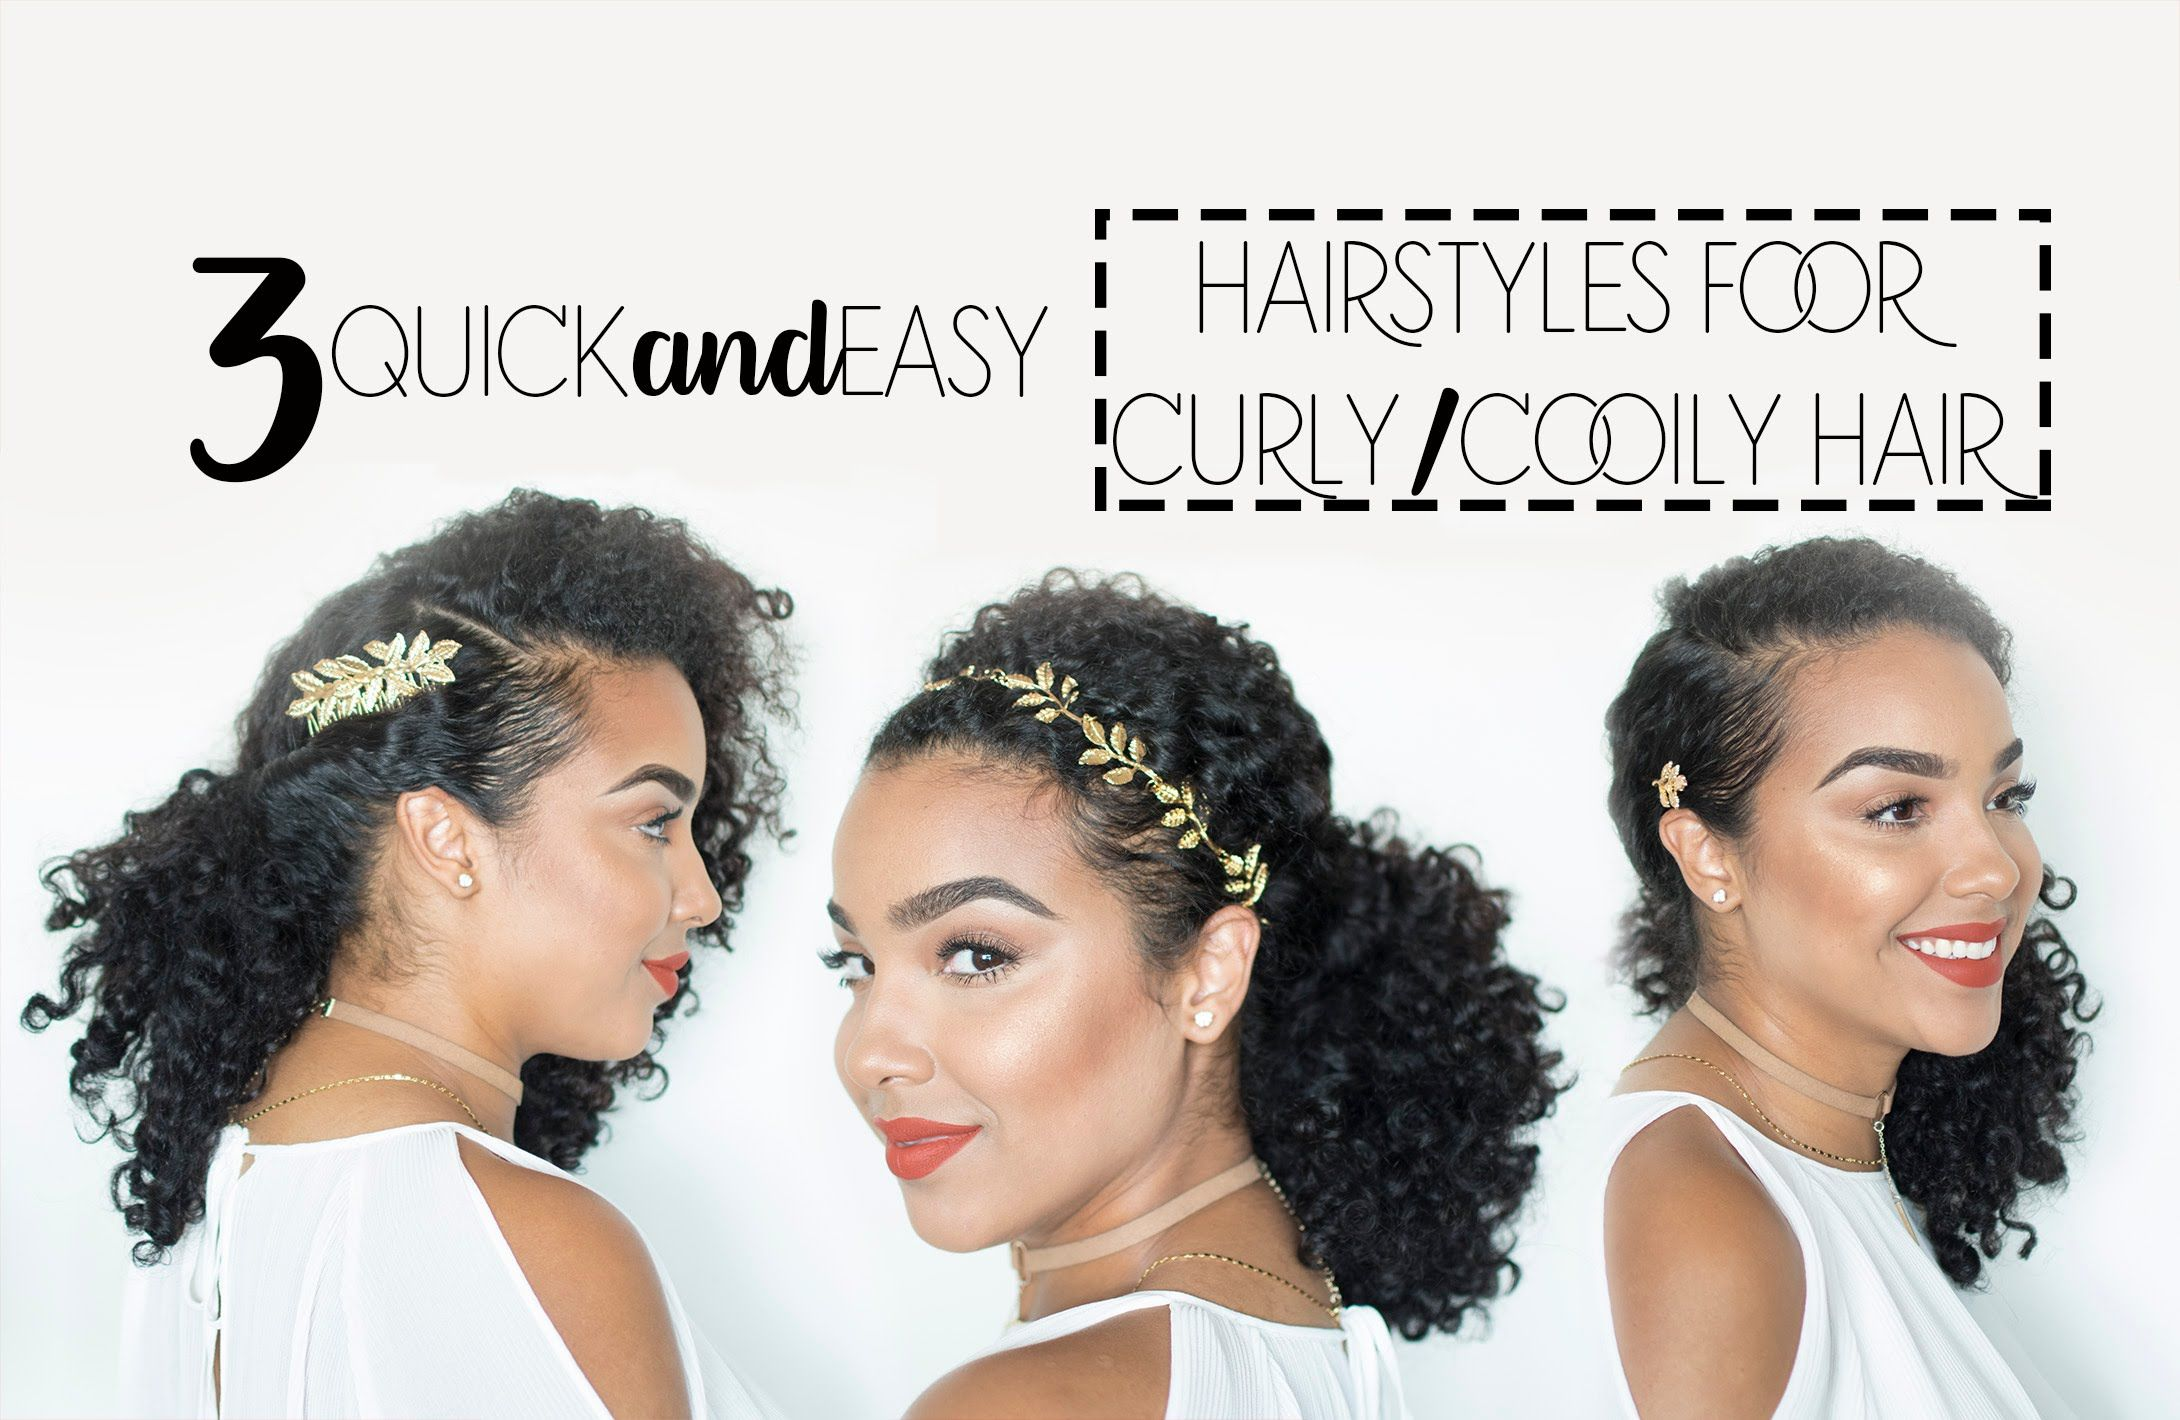 quick and easy hairstyles for curly/coily hair using hair